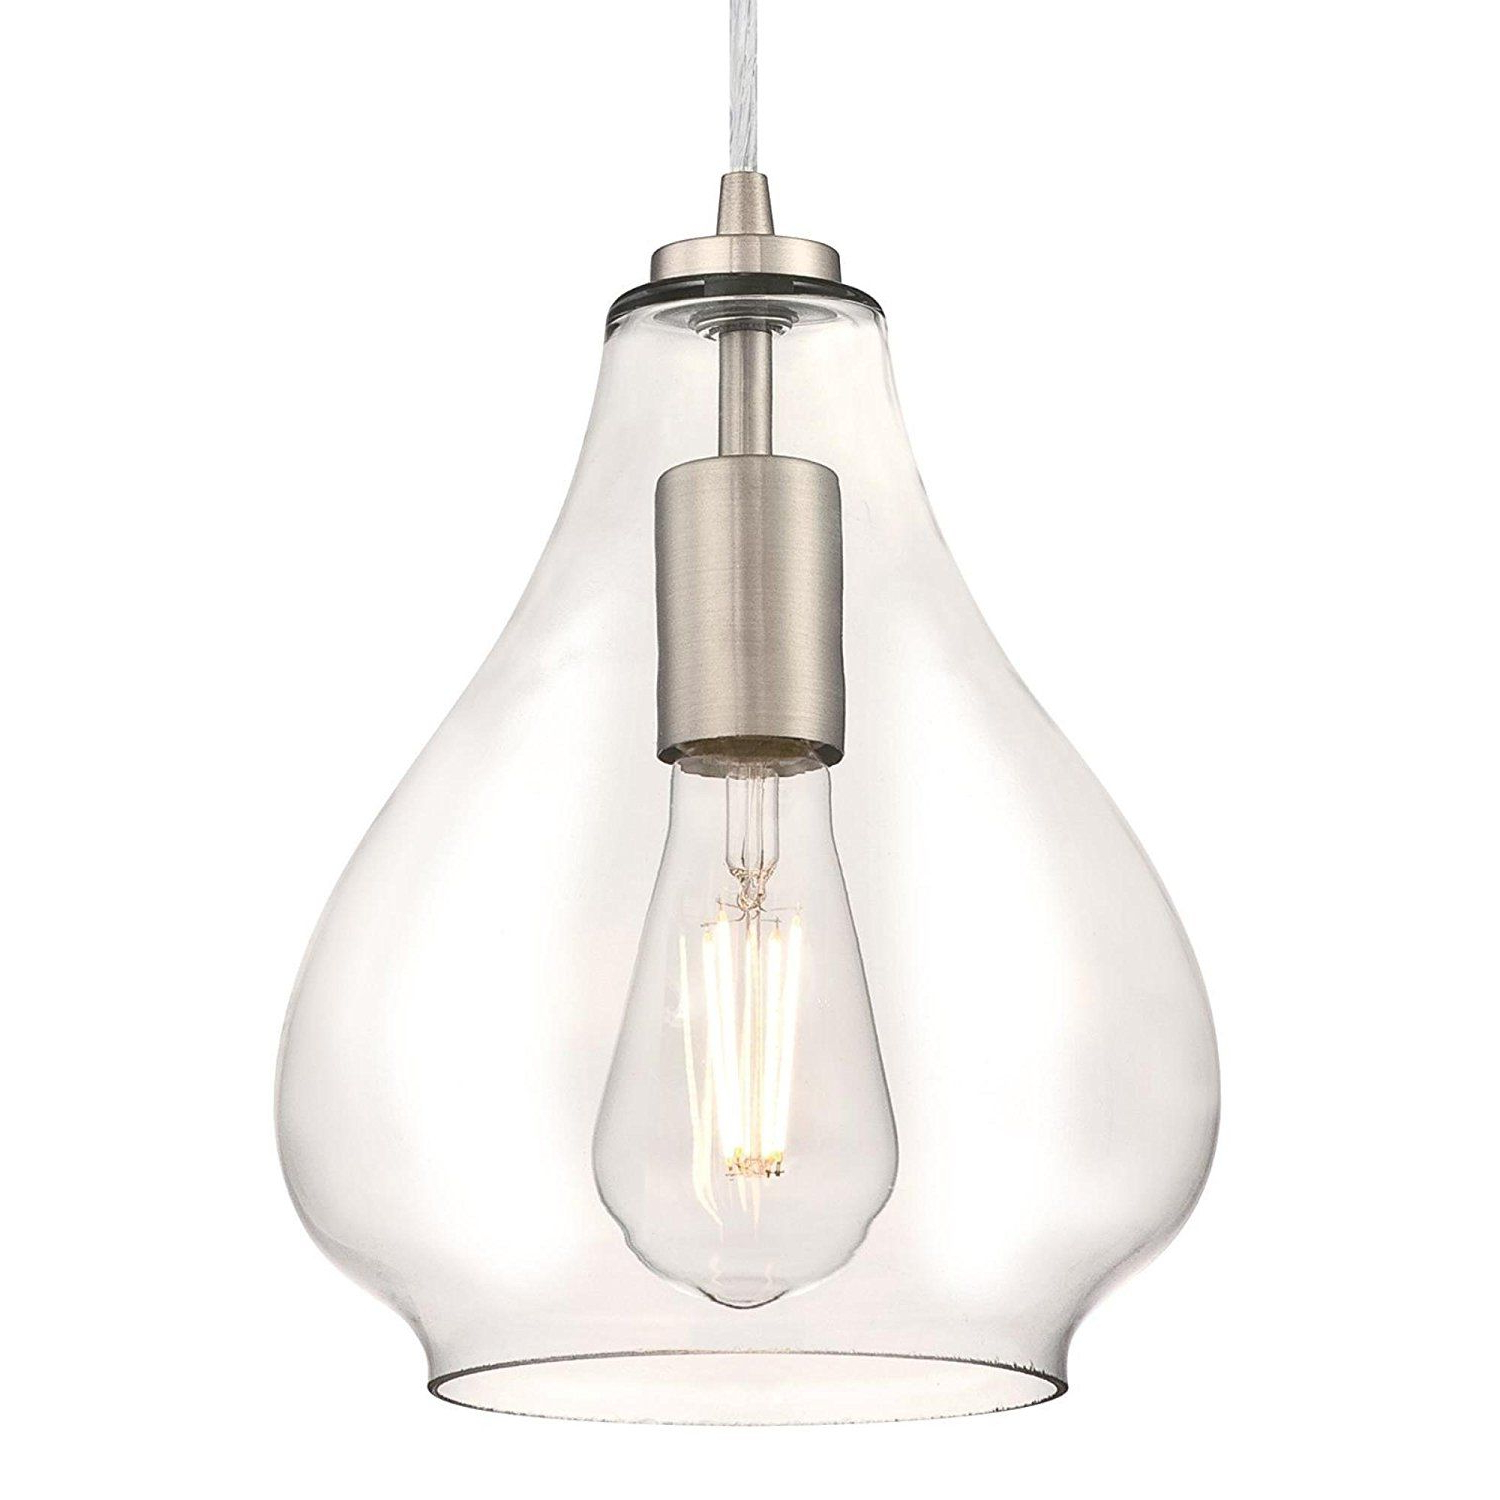 2019 Moyer 1 Light Single Cylinder Pendants Throughout Westinghouse 6102600 Industrial One Light Adjustable Mini (View 1 of 25)